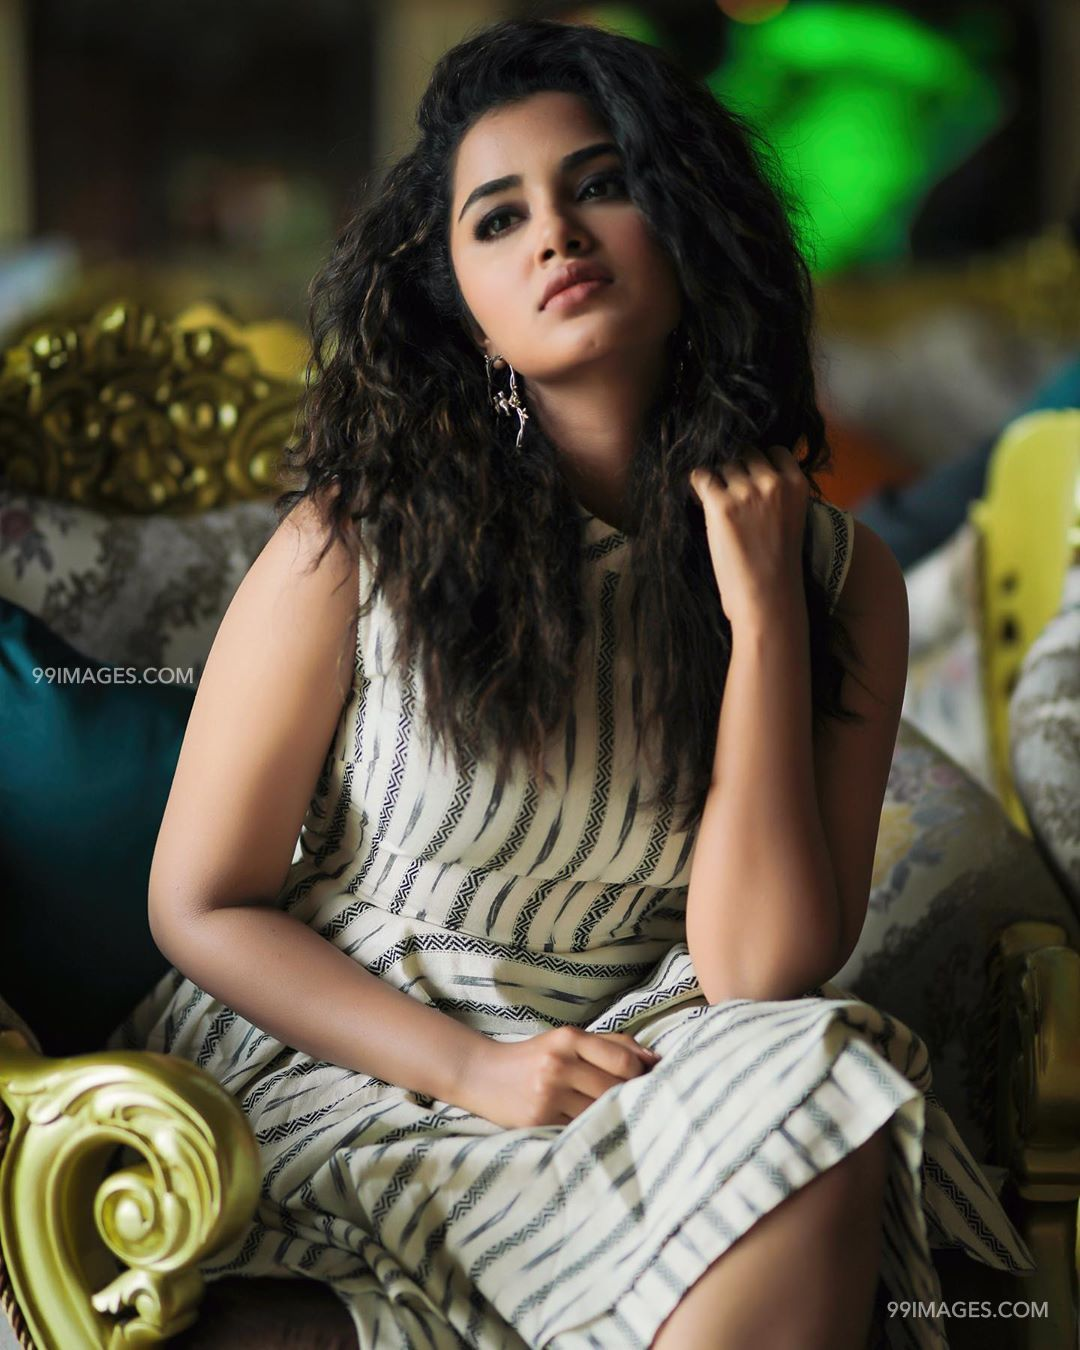 Anupama Parameswaran Latest Hot HD Photoshoot Stills & Mobile Wallpapers HD (1080p) (29915) - Anupama Parameswaran